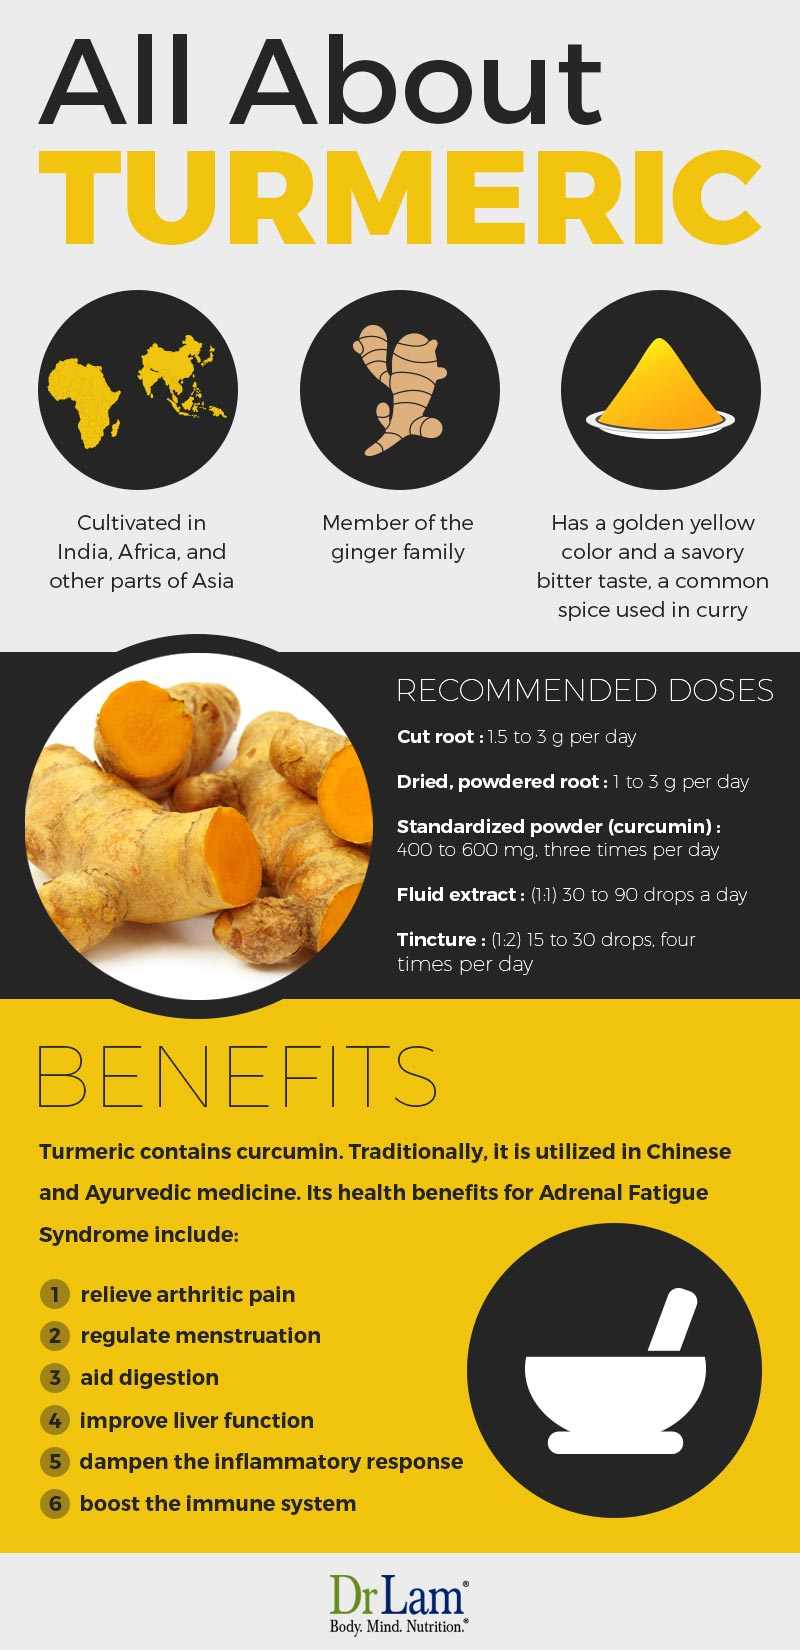 Check out this easy to understand infographic about turmeric